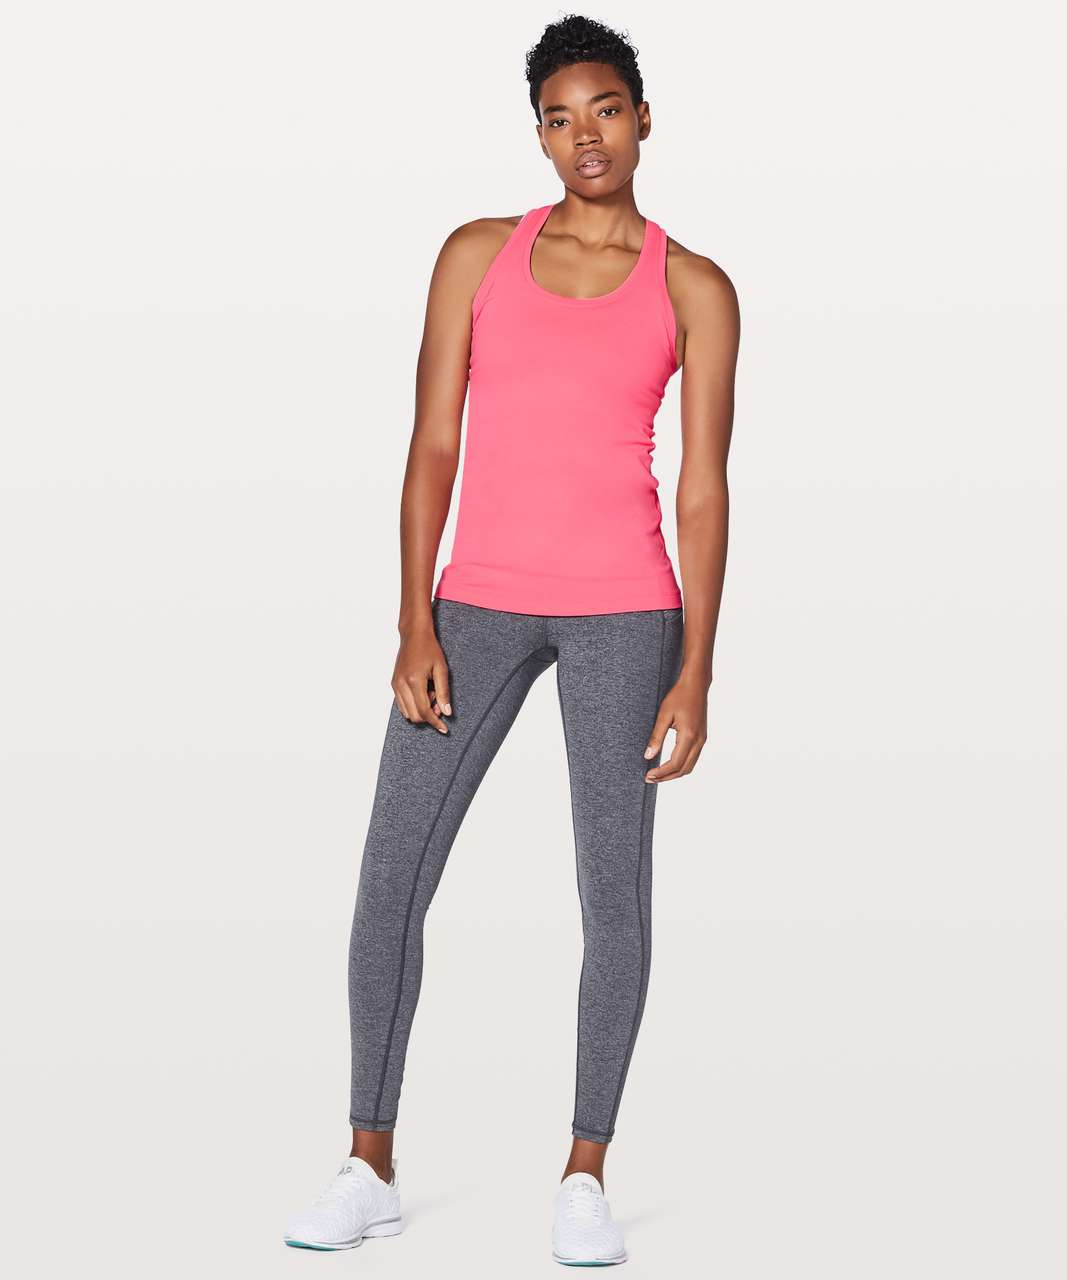 Lululemon Cool Racerback II - Flash Light Tone